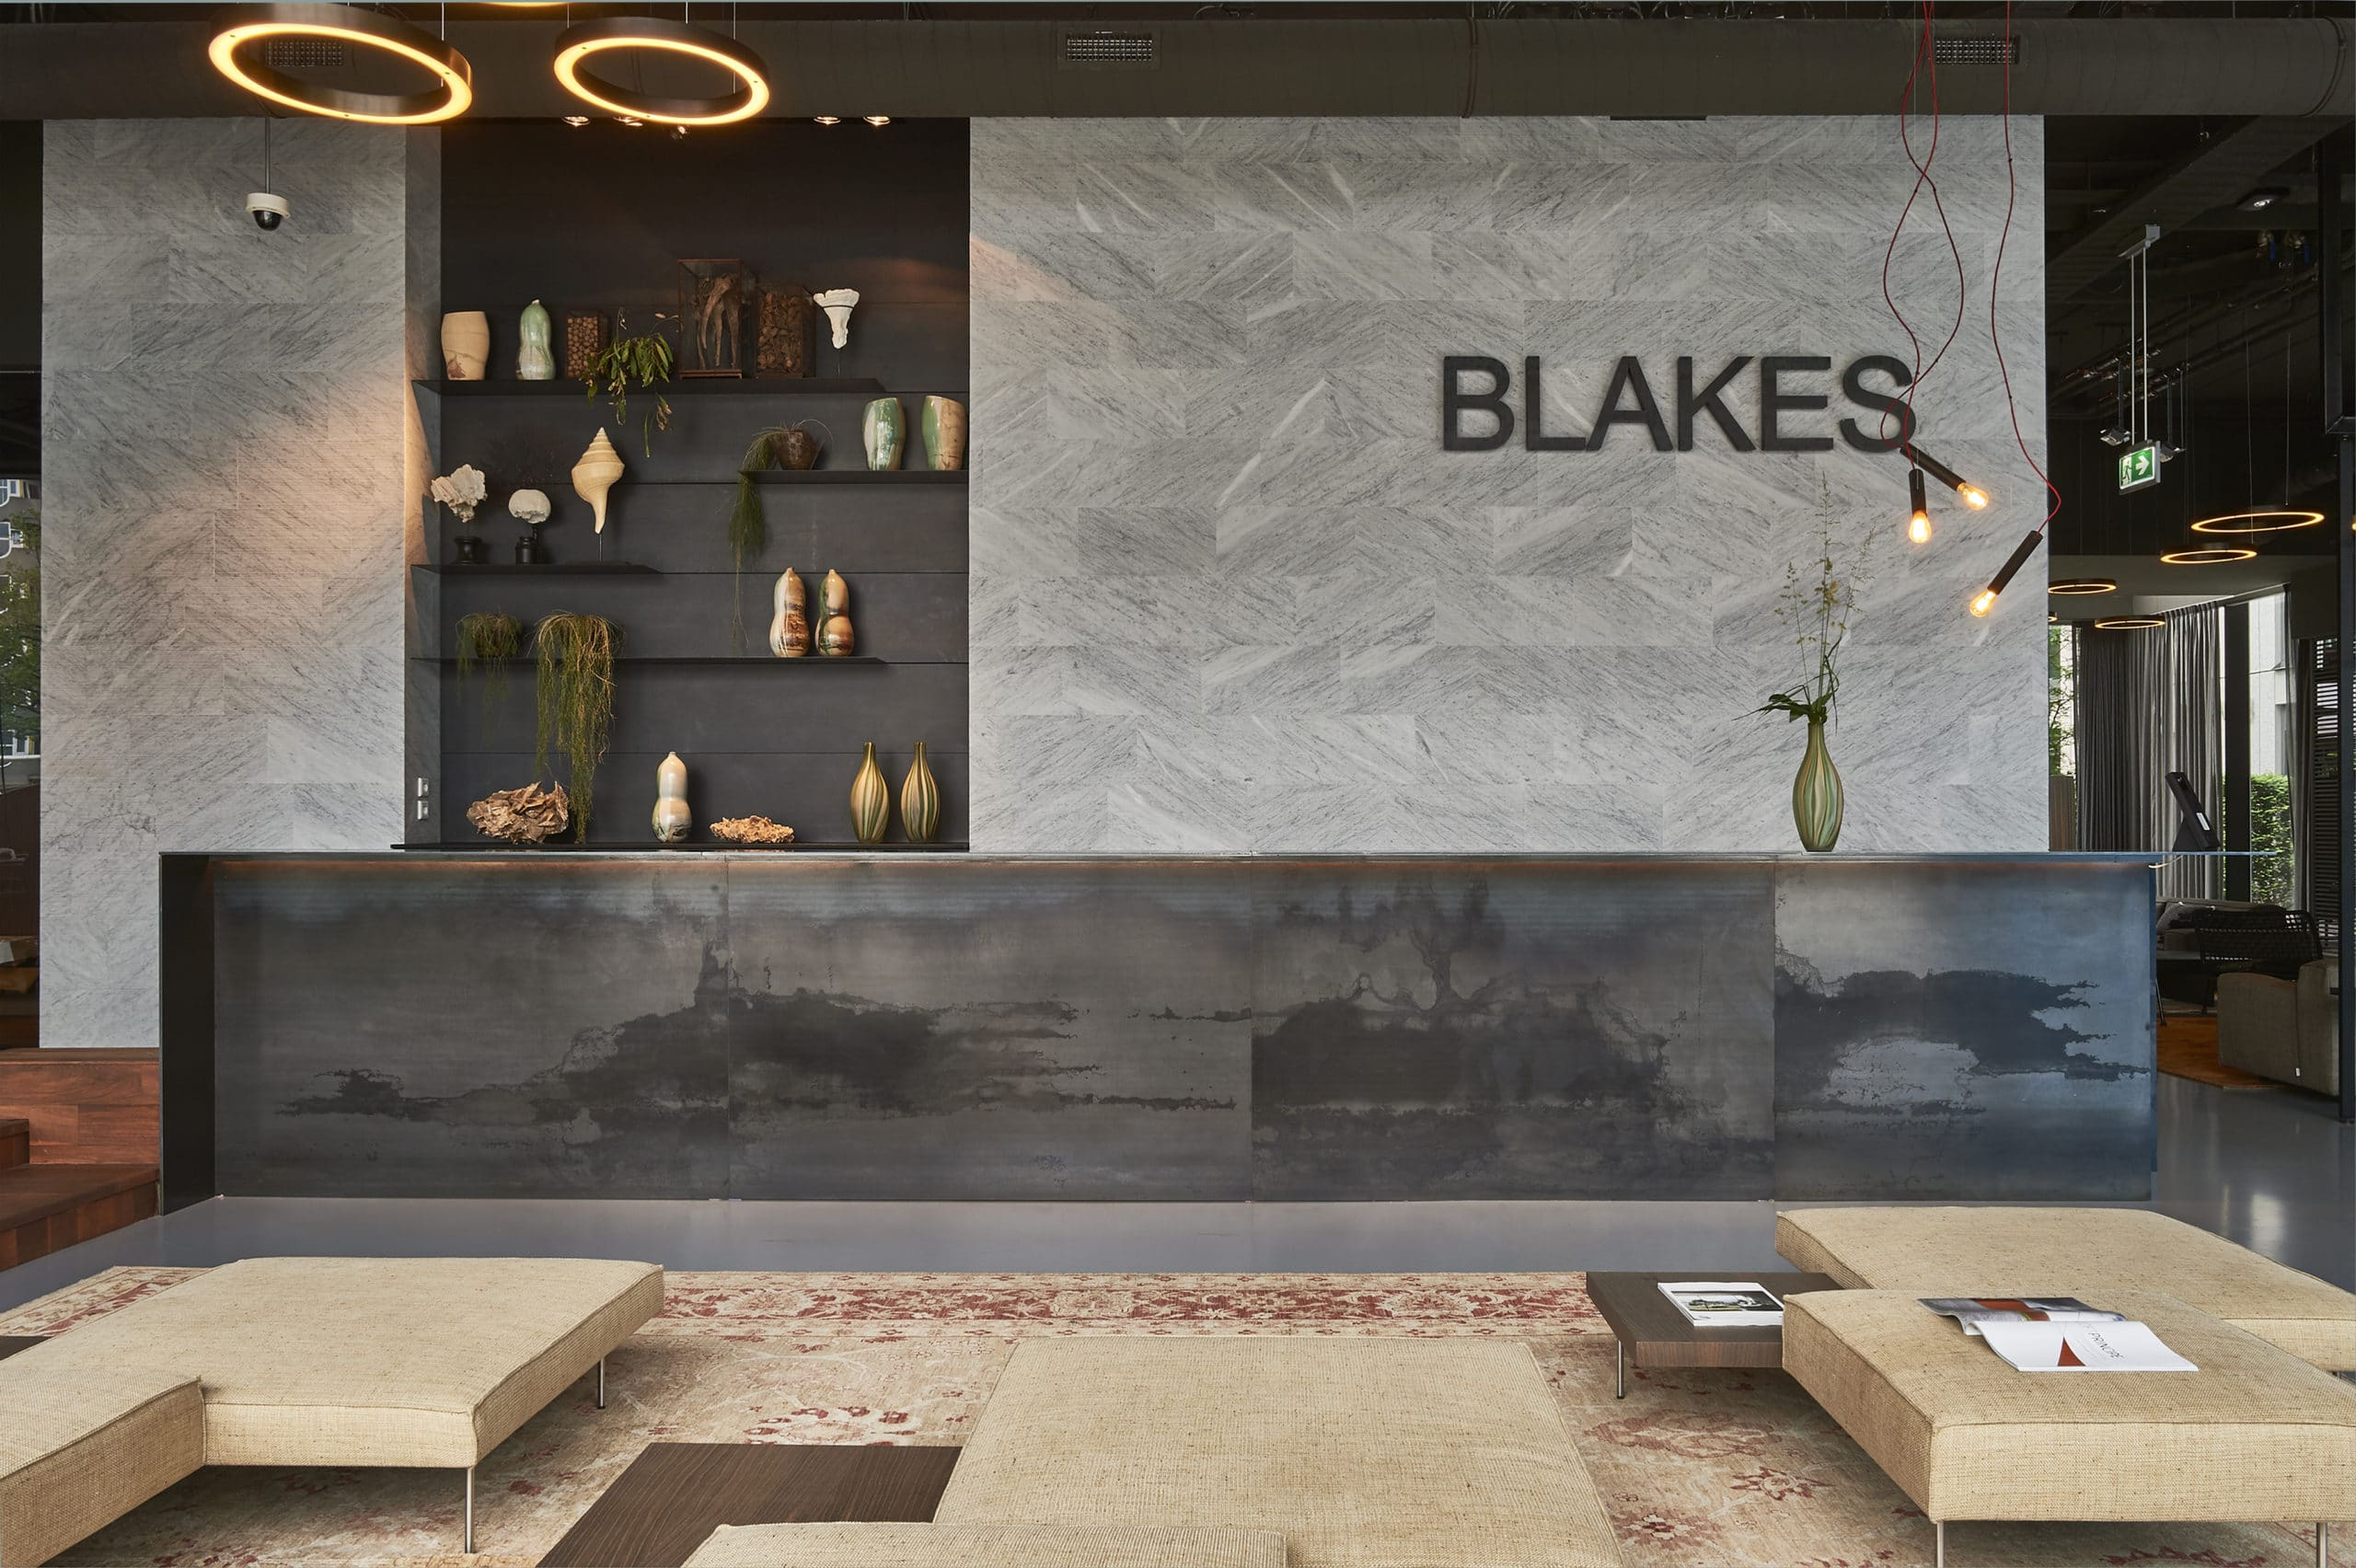 Blakes Lounge reception area